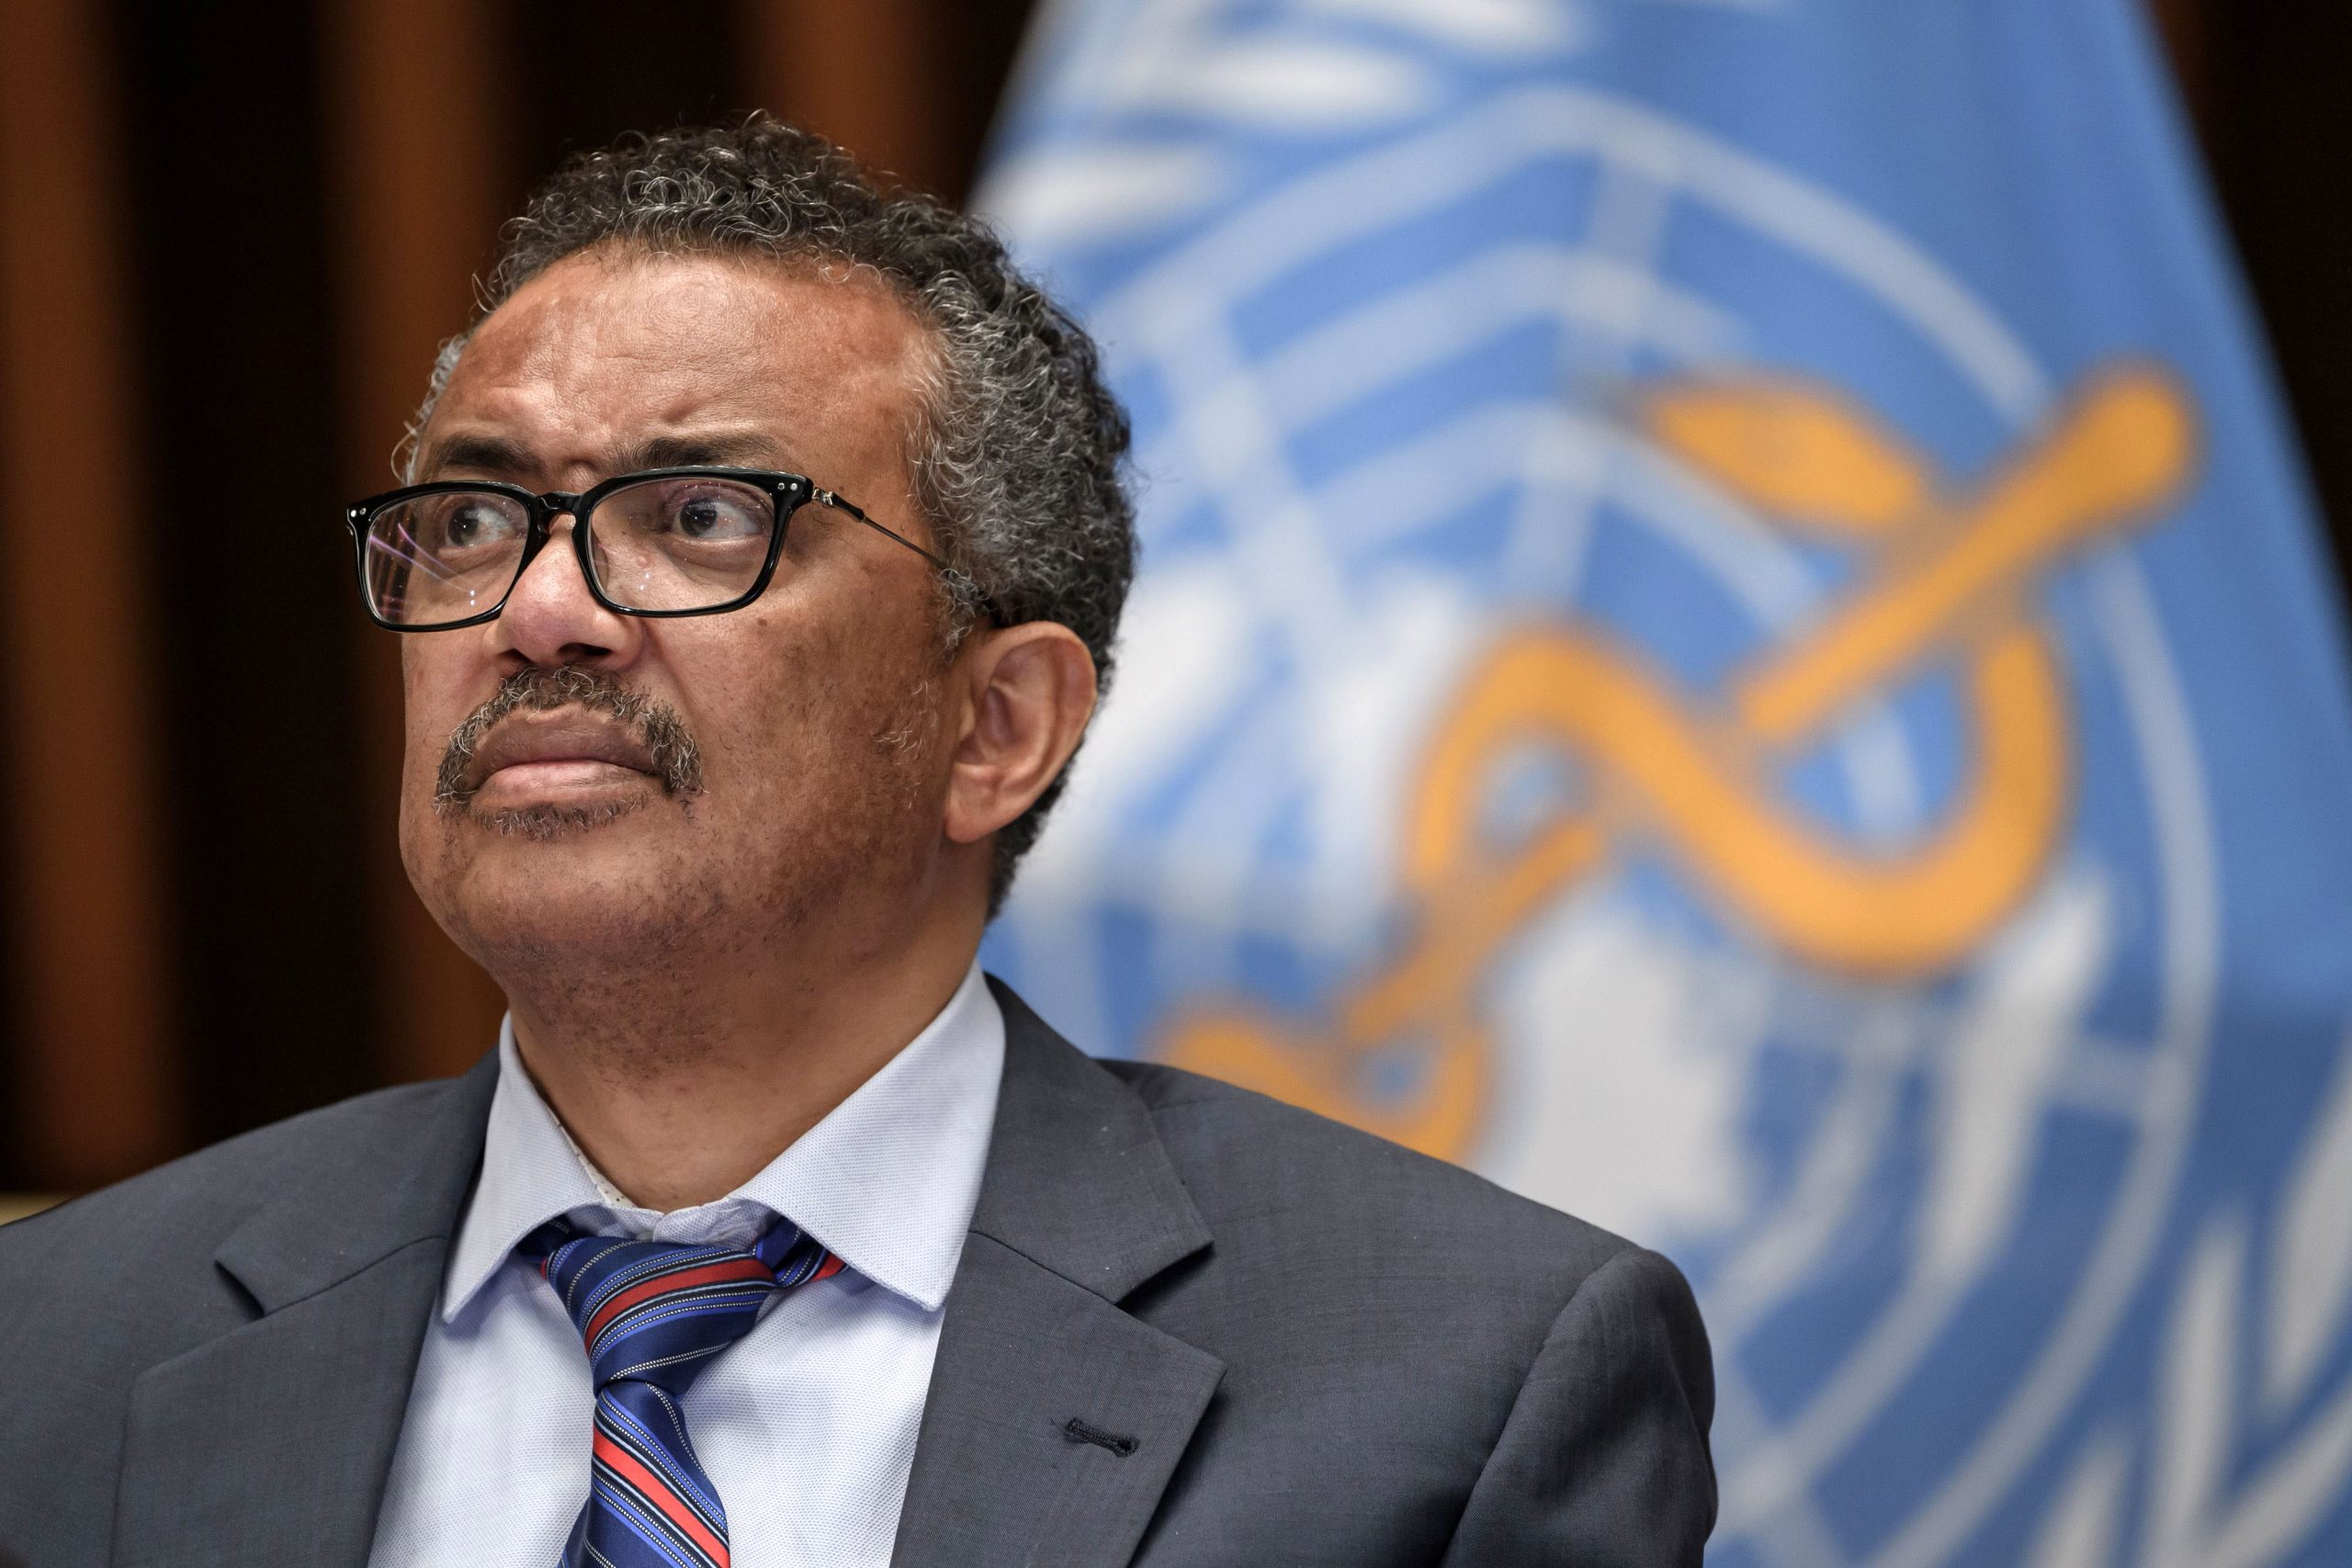 Tedros Adhanom Ghebreyesus, director-general of the World Health Organization, attends a press conference on July 3 in Geneva, Switzerland.